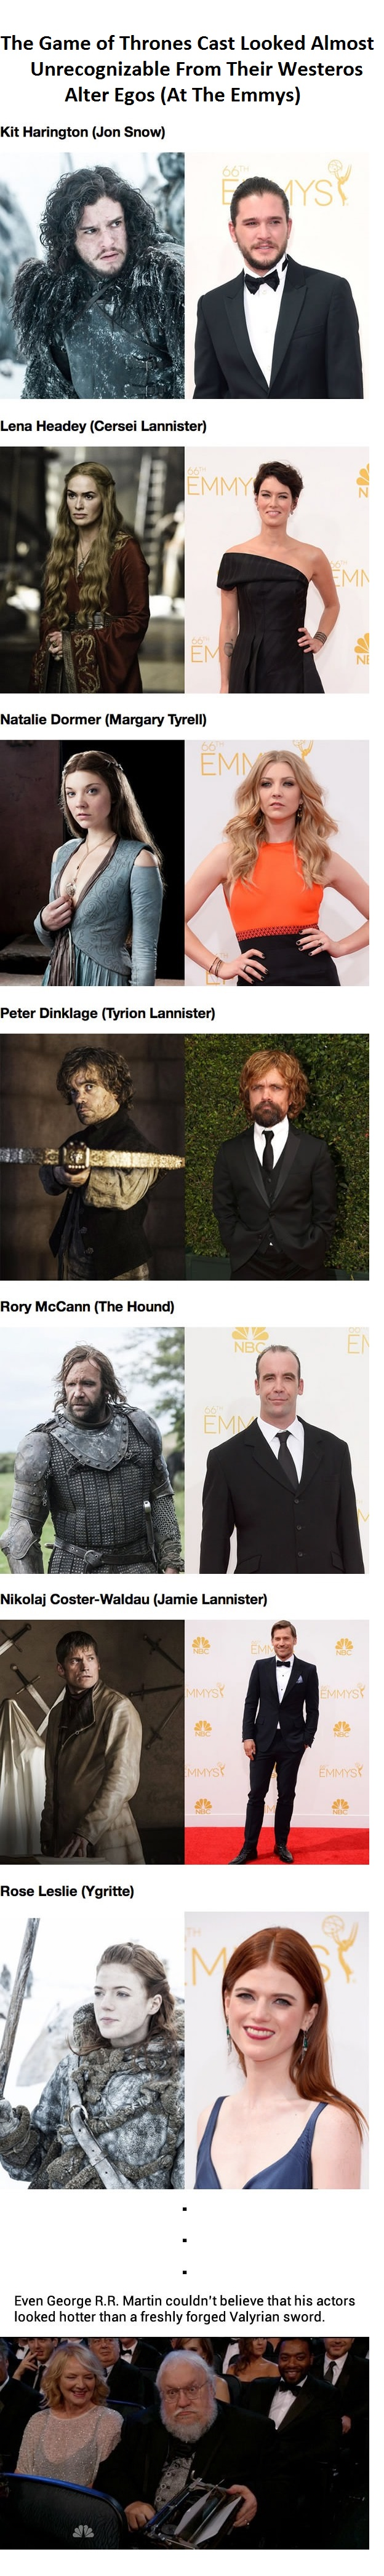 celebs-game-of-thrones-cast-emmys-westeros